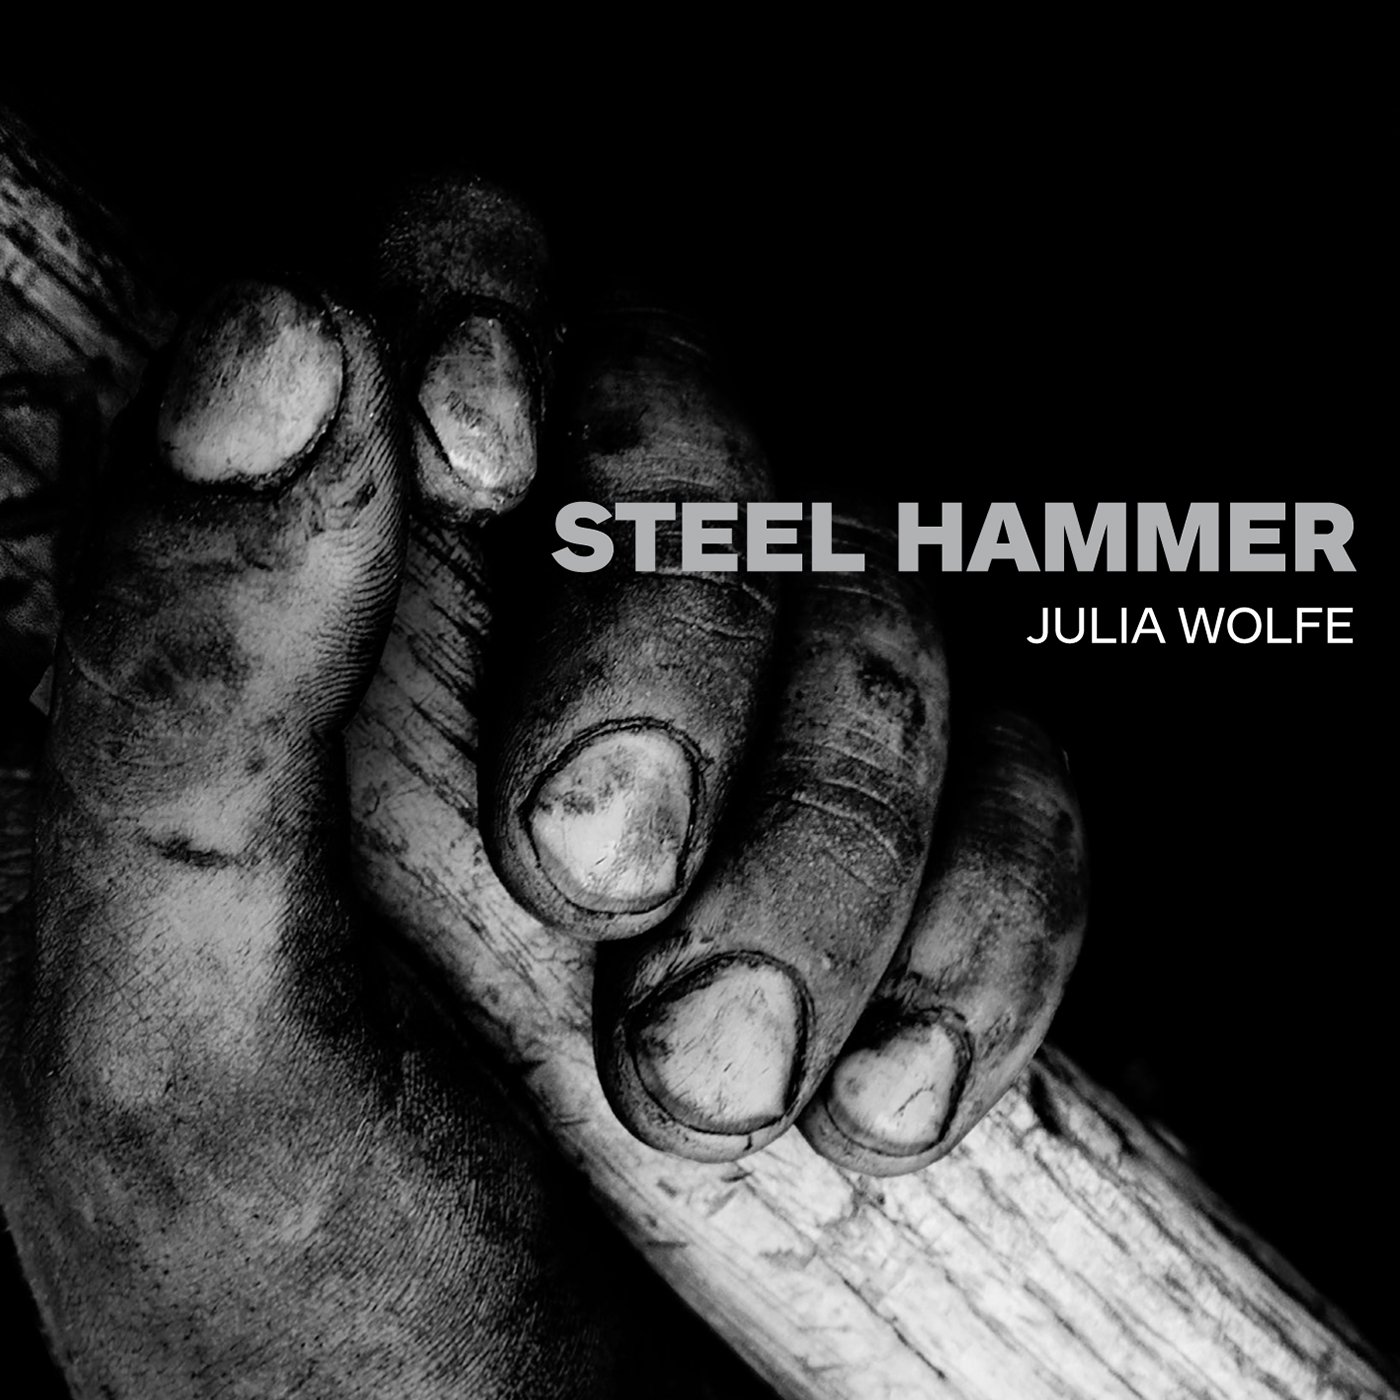 Wolfe: Steel Hammer by Cantaloupe